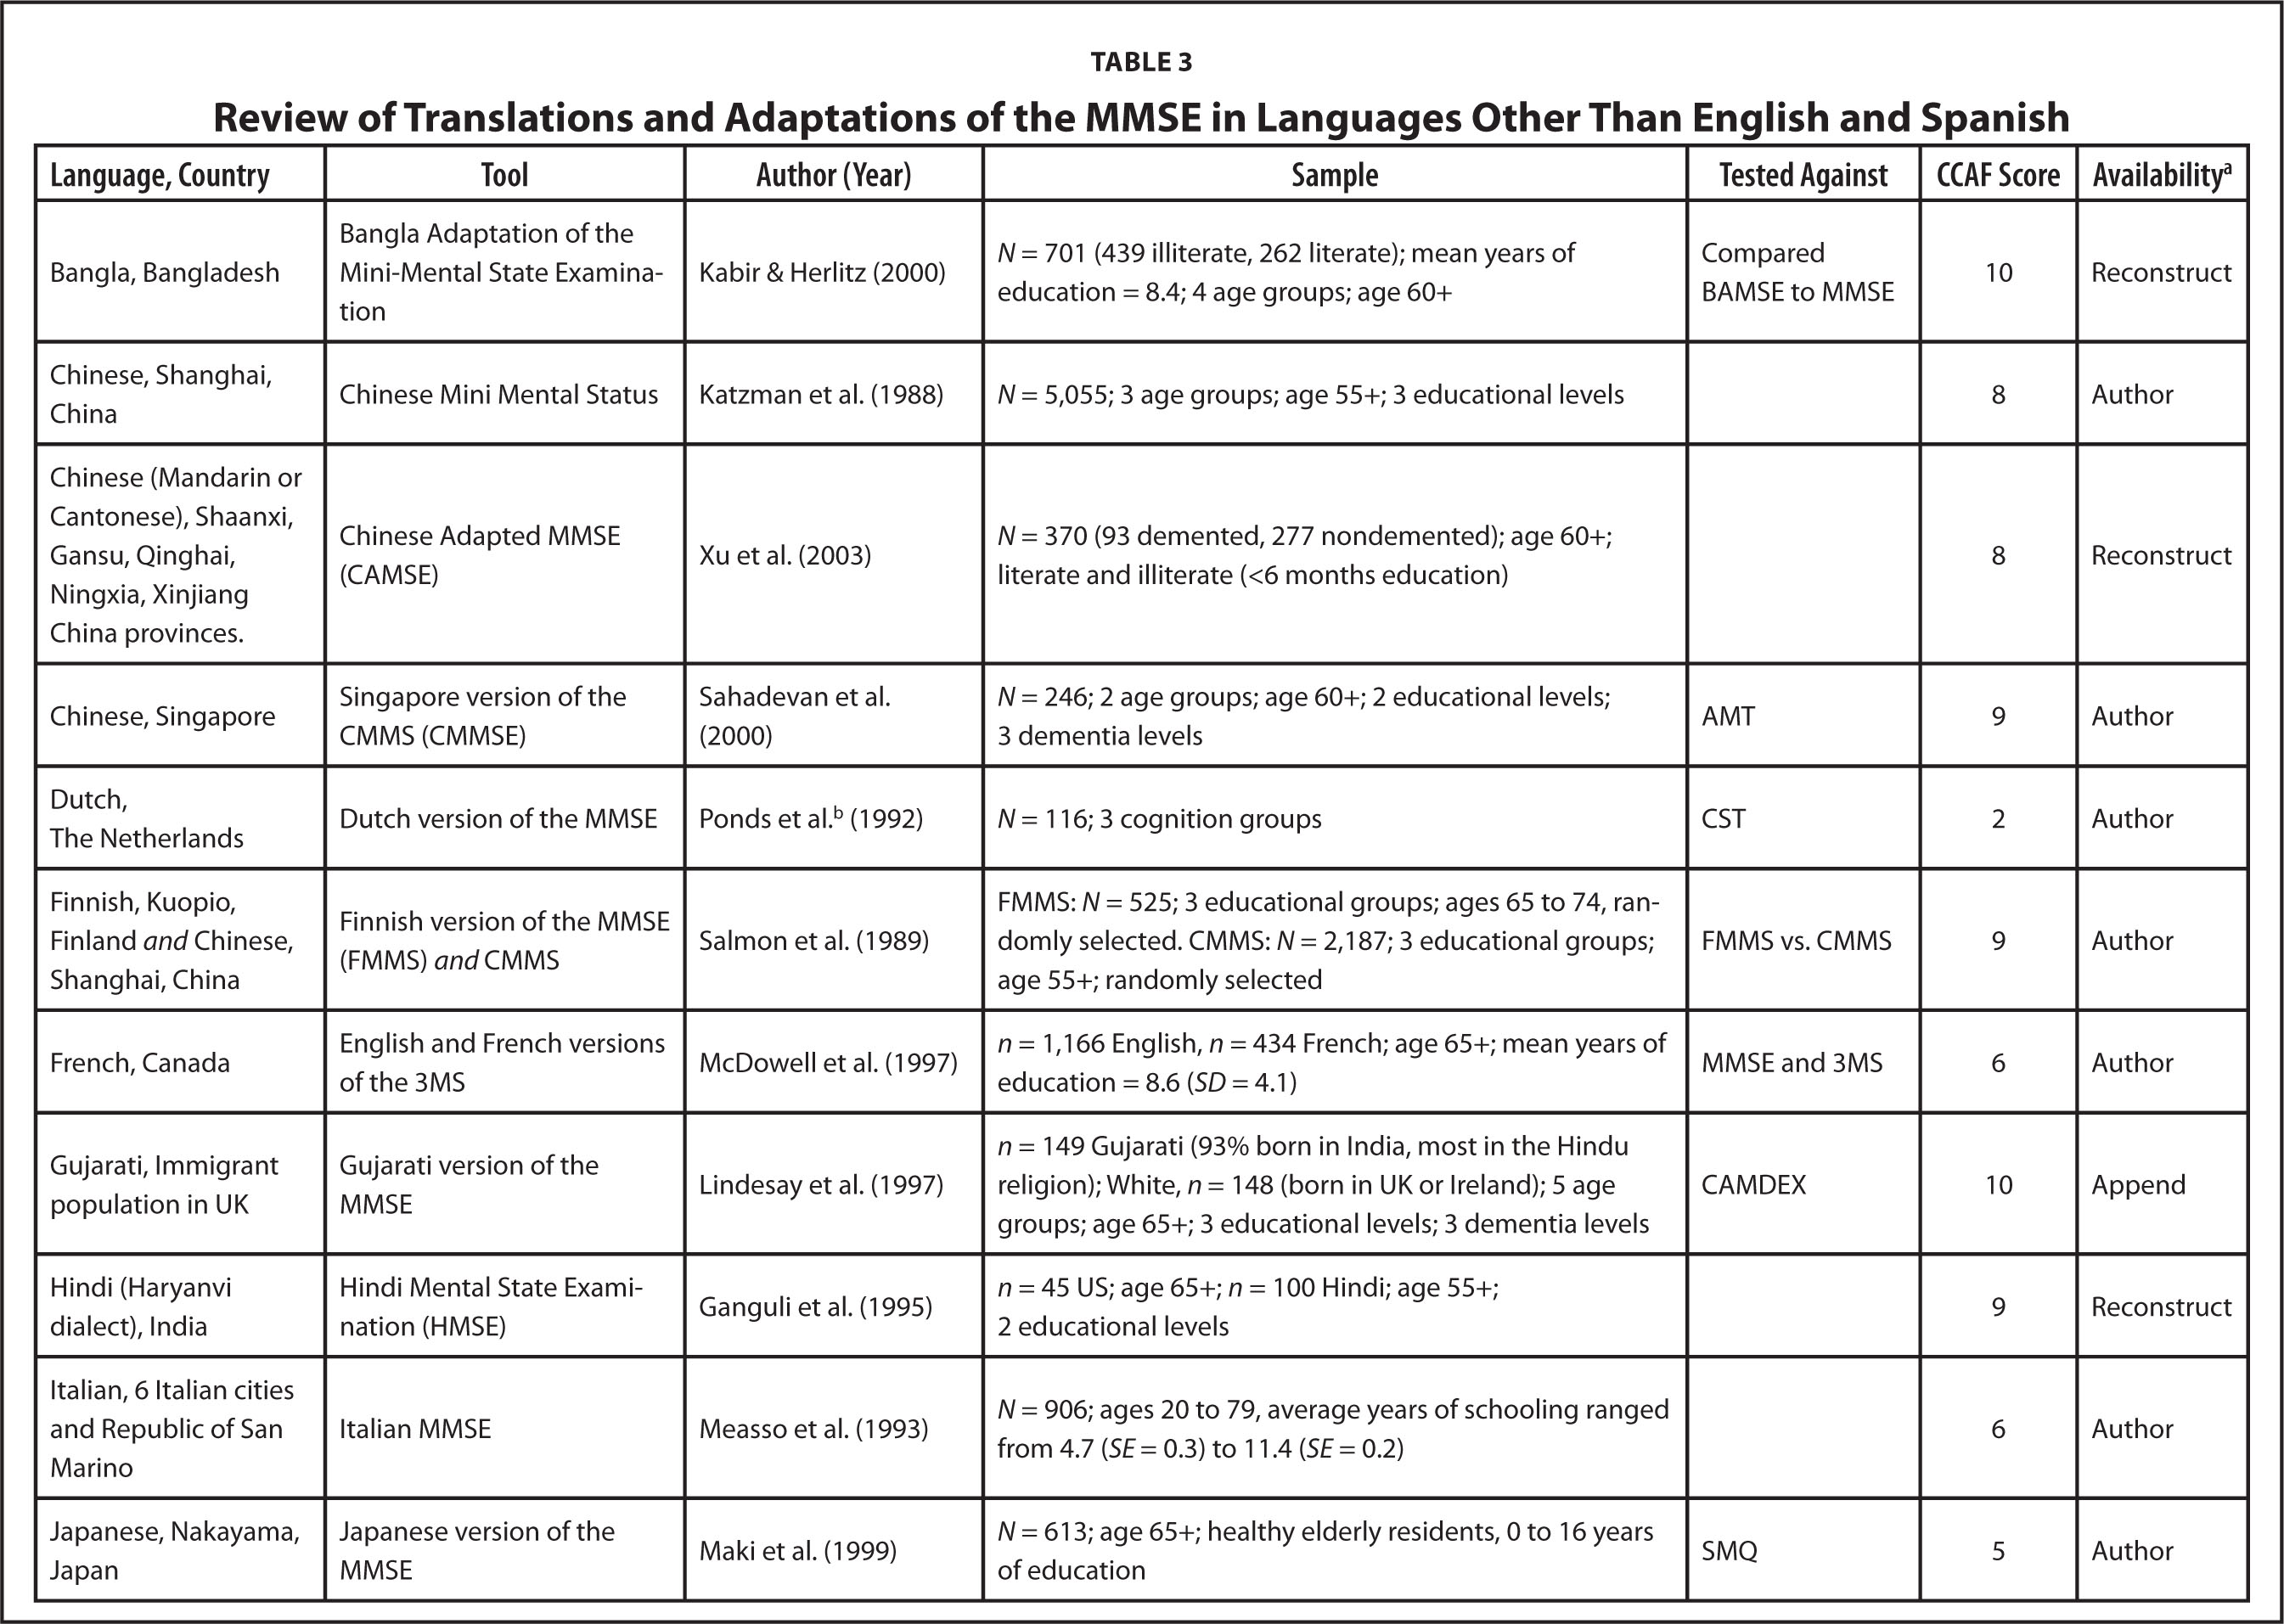 A Review Of Translations And Adaptations Of The Mini-Mental State Examination In Languages Other